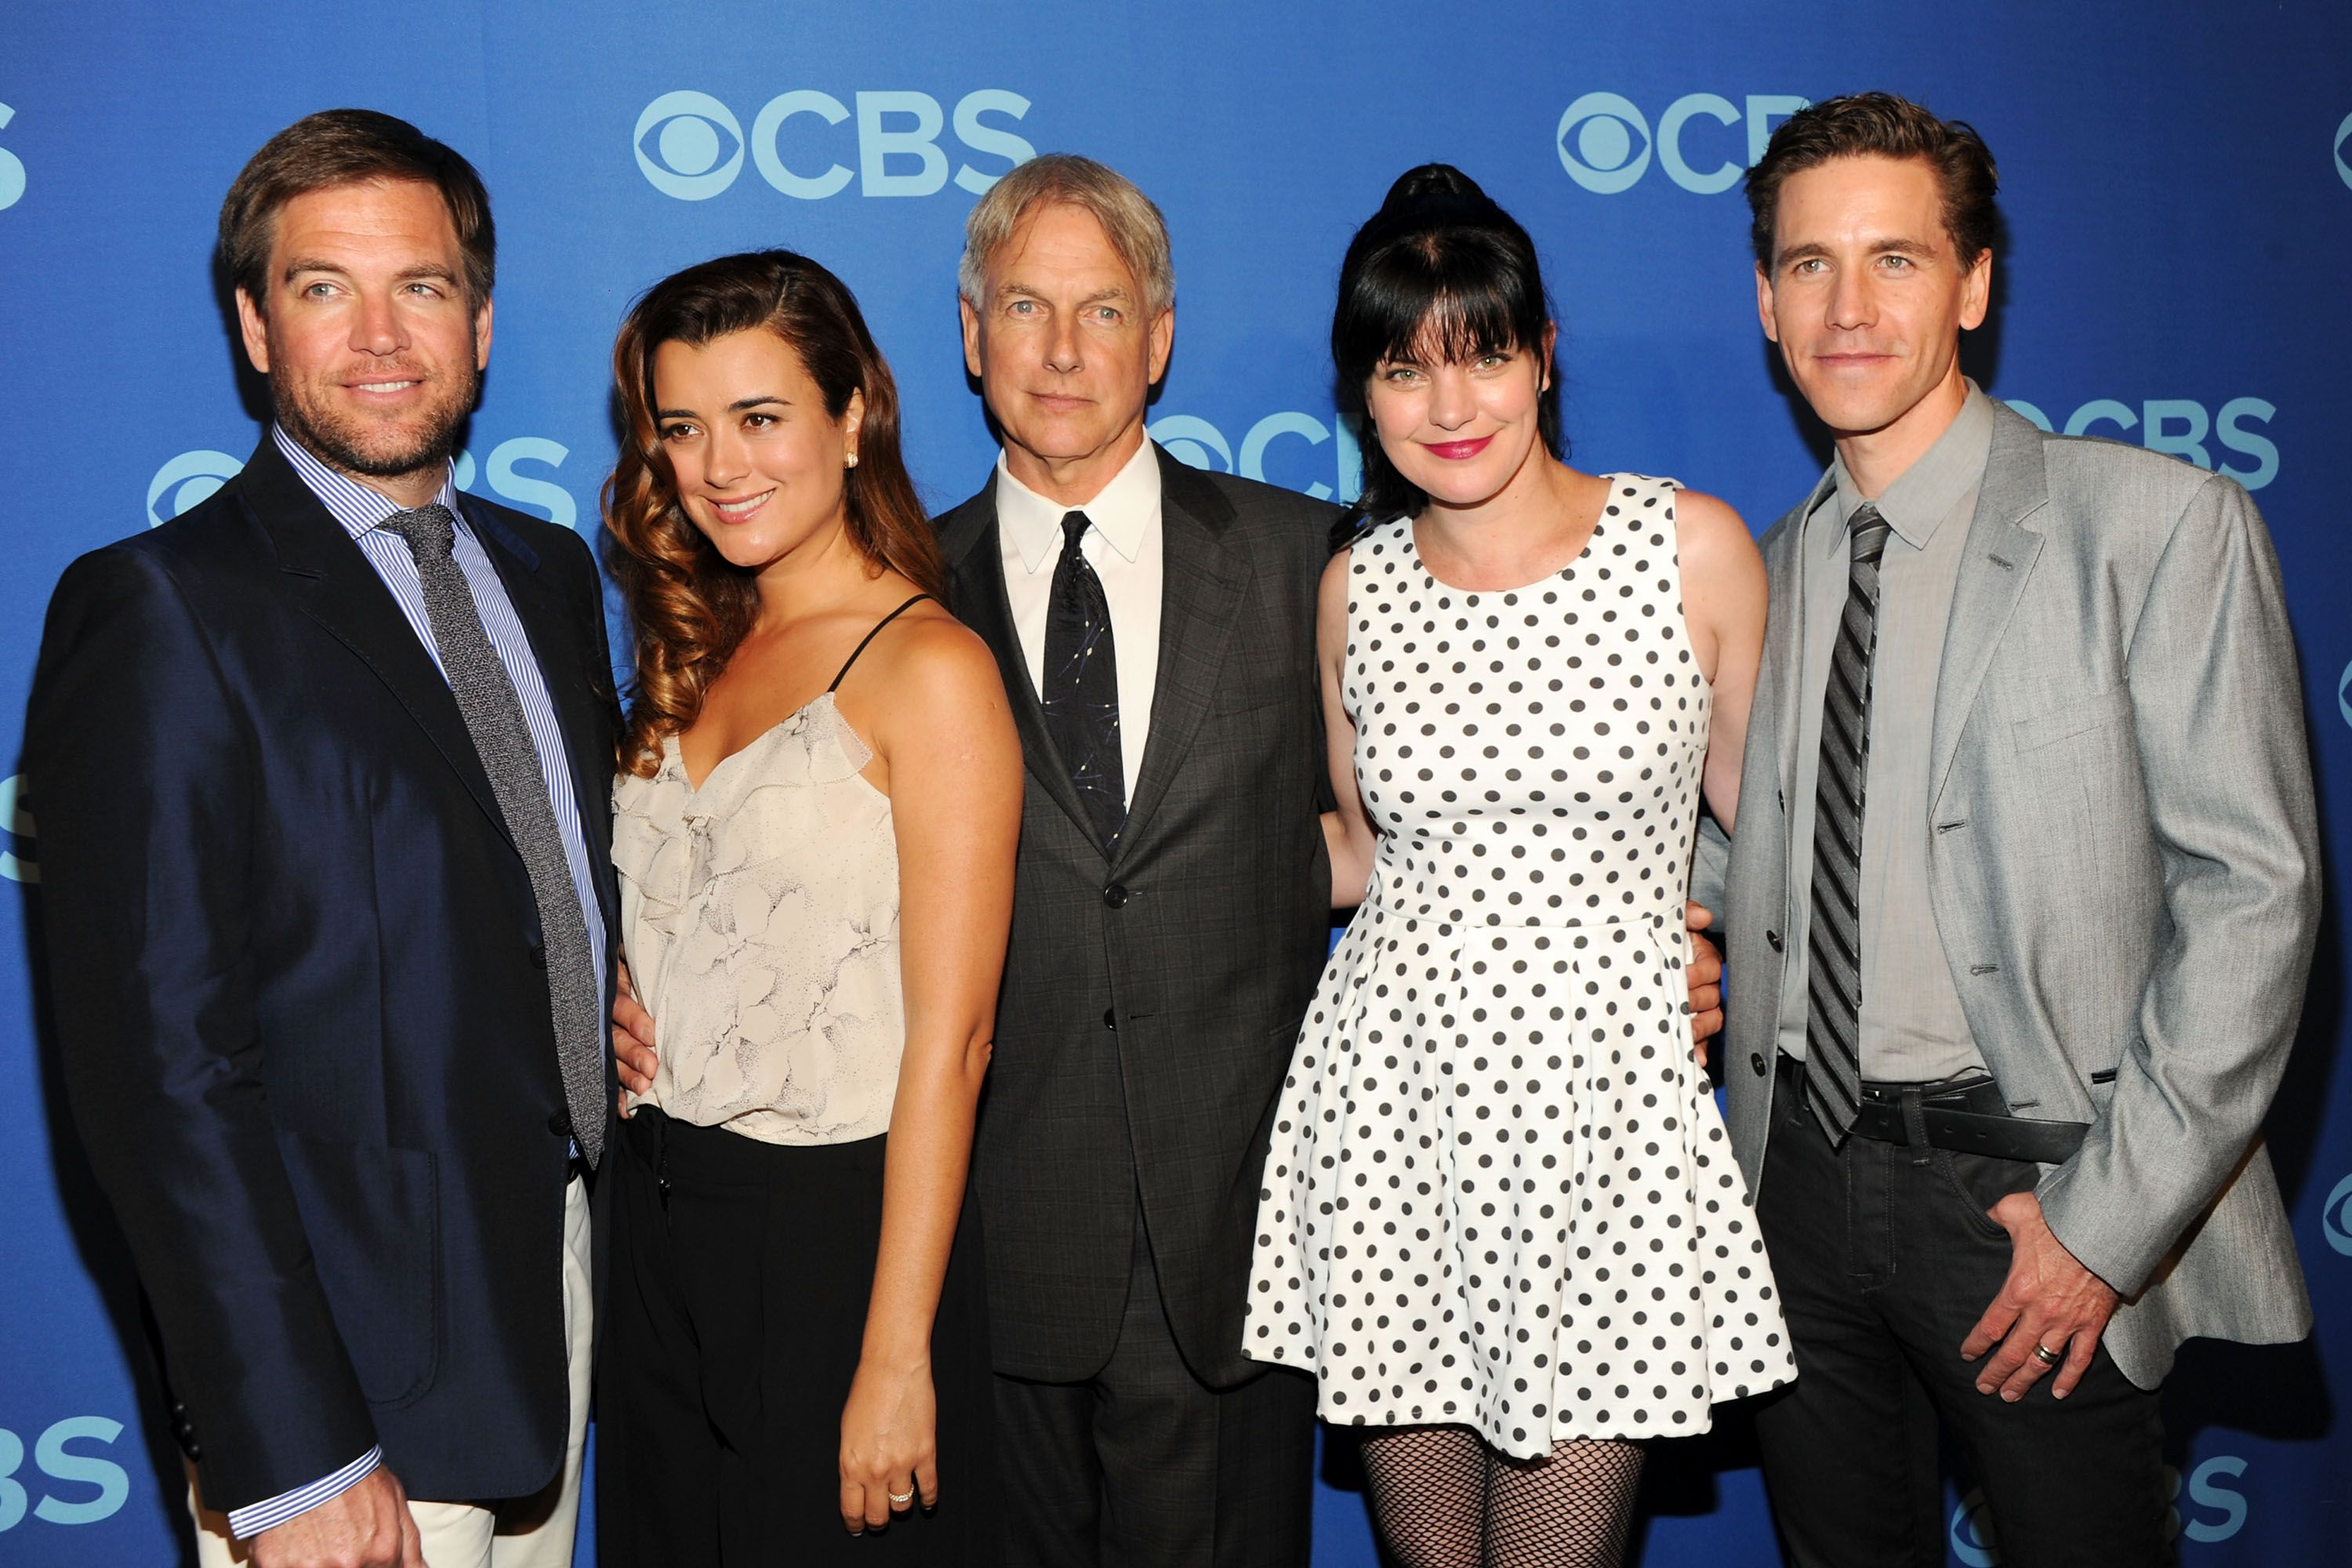 Michael Weatherly, Cote de Pablo, Mark Harmon, Pauley Perrette, and Brian Dietzen atCBS Upfront Presentation on May 15, 2013, in New York City | Photo:Ben Gabbe/Getty Images